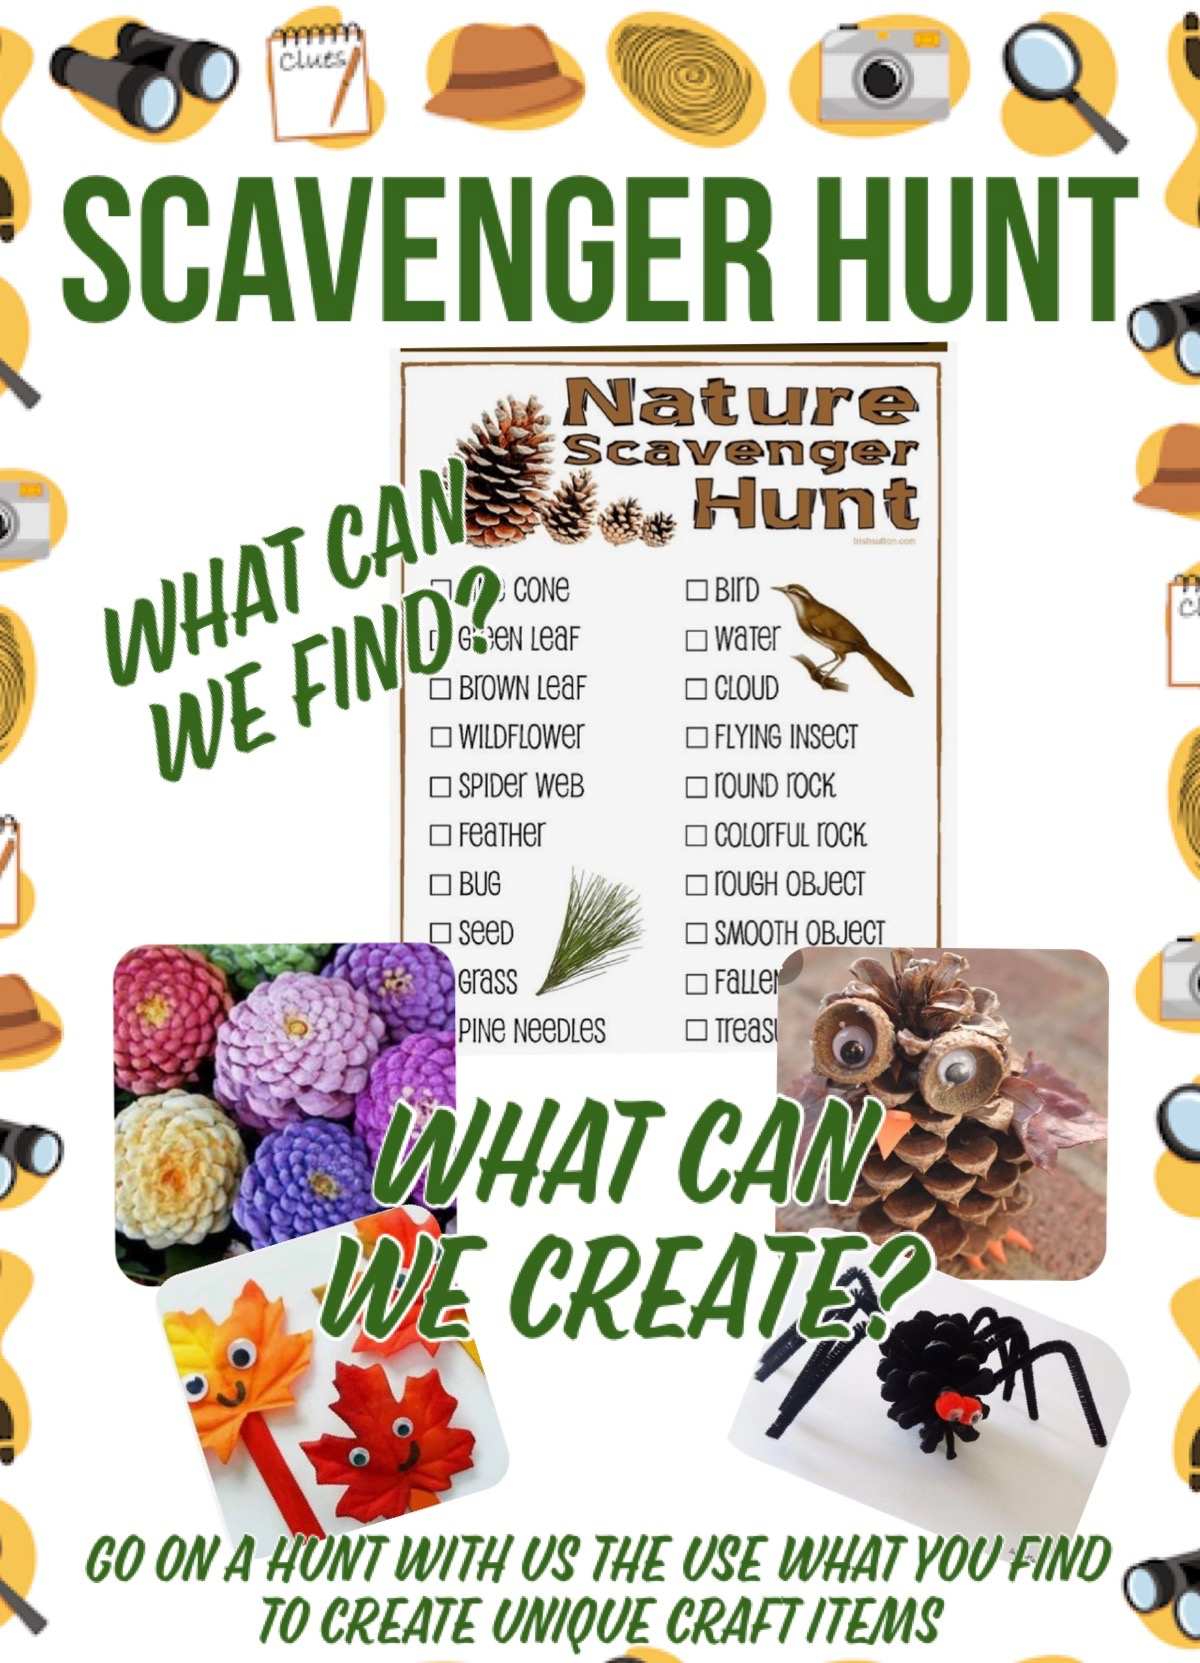 Scavenger hunt and craft